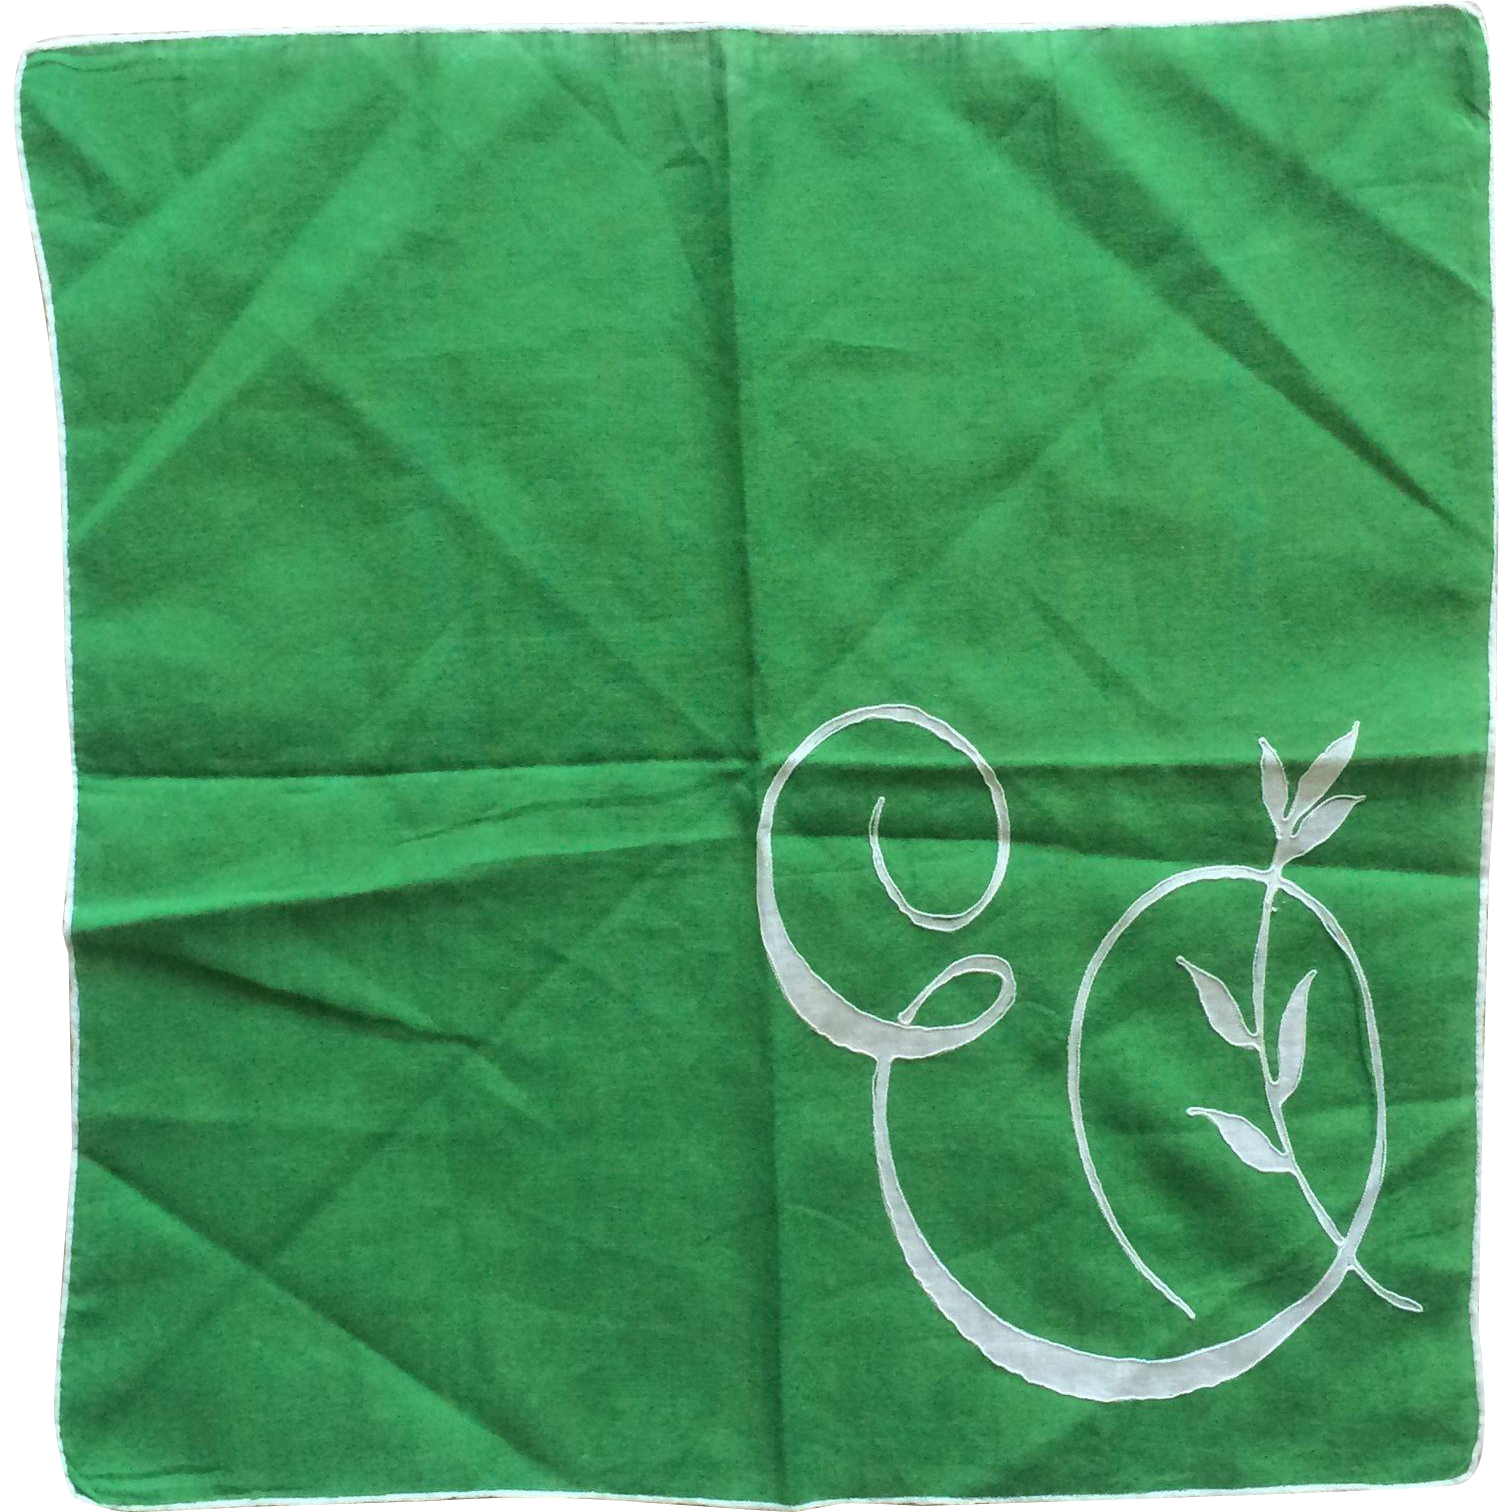 ST Patricks Day kelly green and white cotton initial 'E' hankie